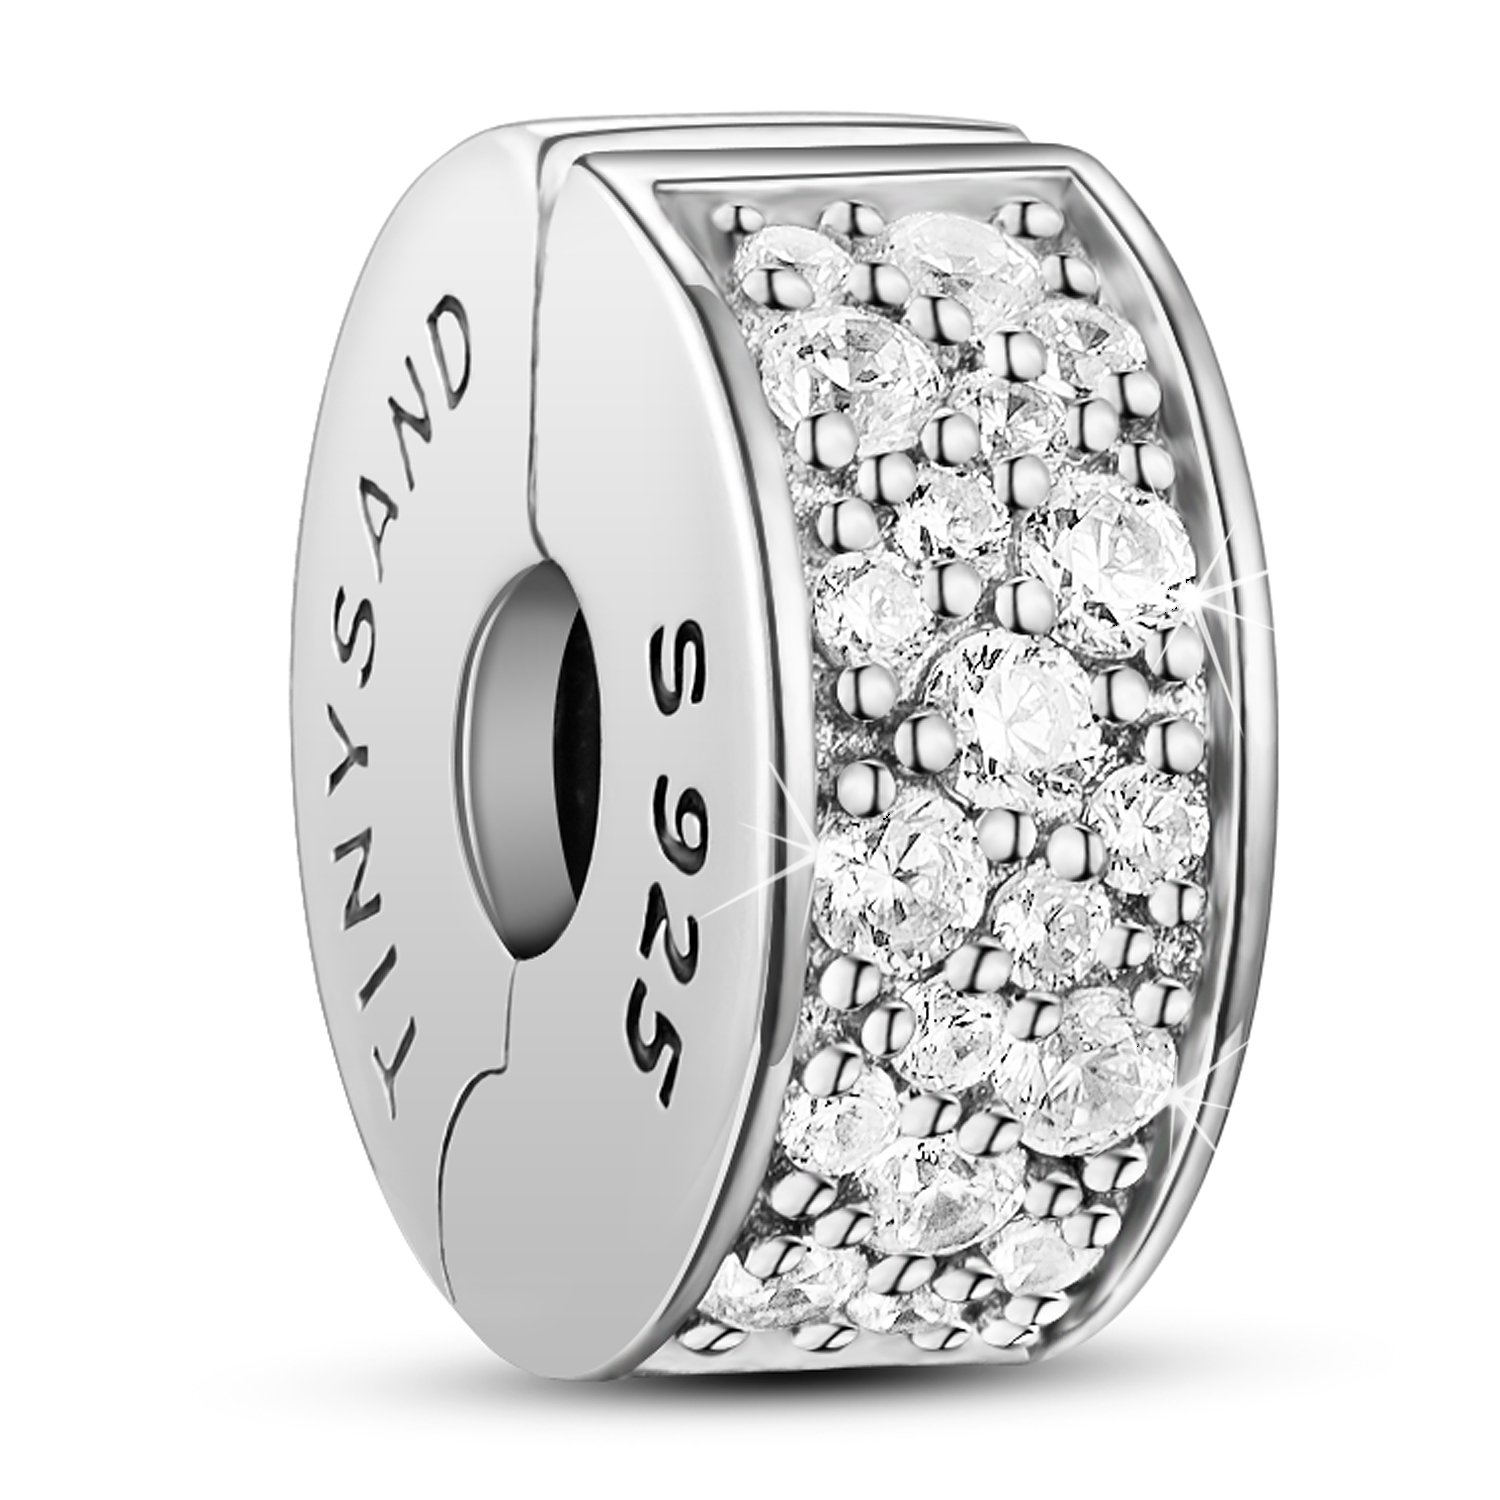 TINYSAND 925 Sterling Silver Dazzling CZ Clip Lock Stopper Spacers Charms Beads Fits European Snake Bracelet Bangle Unique Jewelry for Girls Women